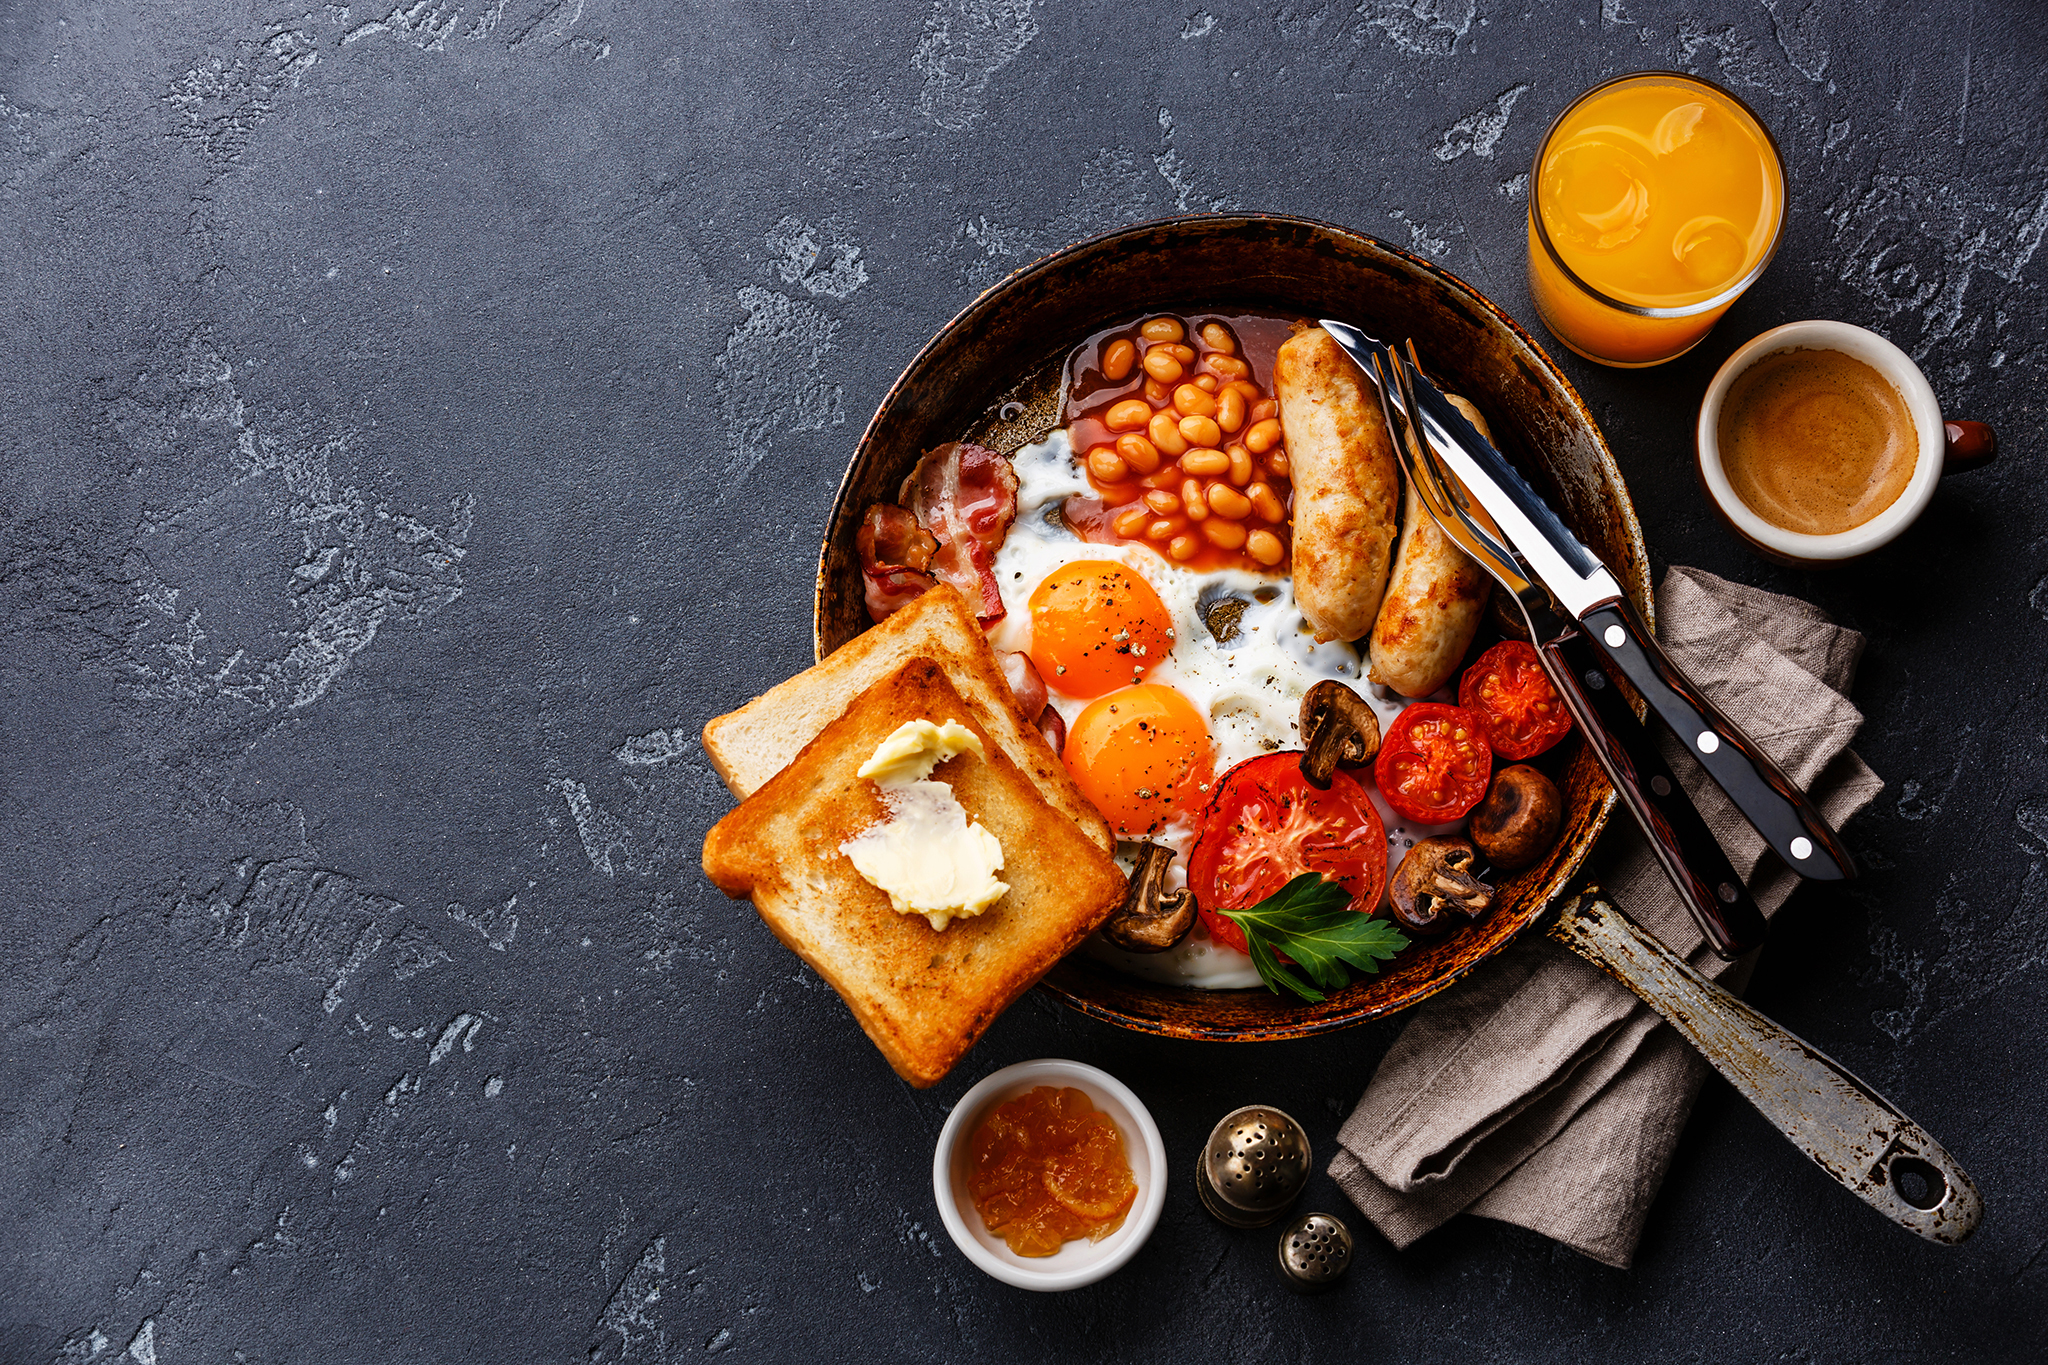 14 top Birmingham brunch spots